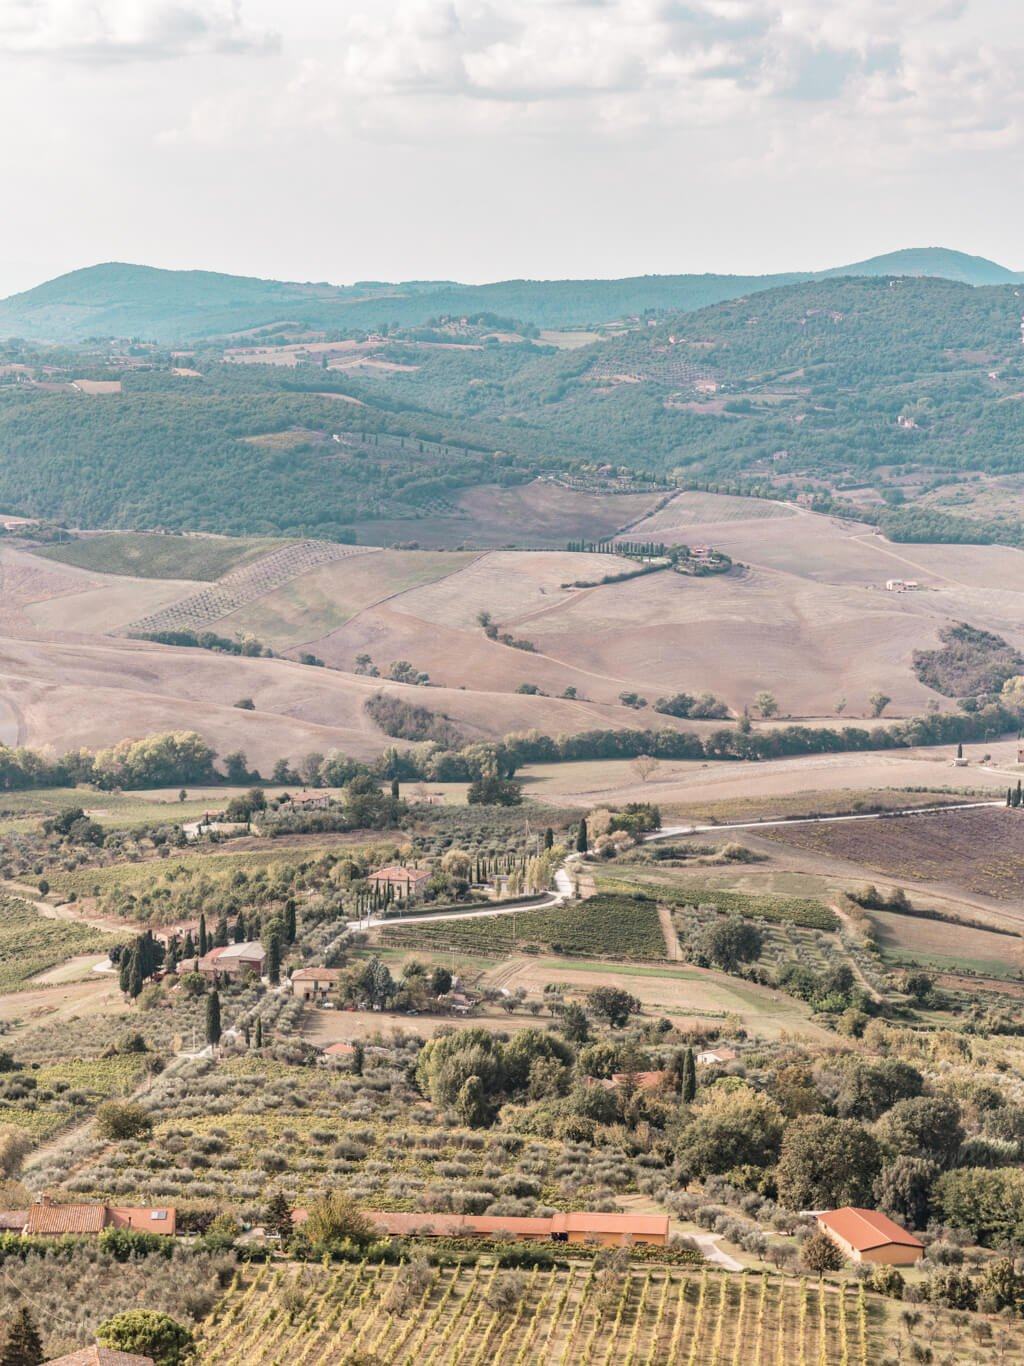 Montepulciano    A Guide For Planning A Trip To Tuscany, Italy - Things to do, including food & restaurants tips, wineries, and road trip tips